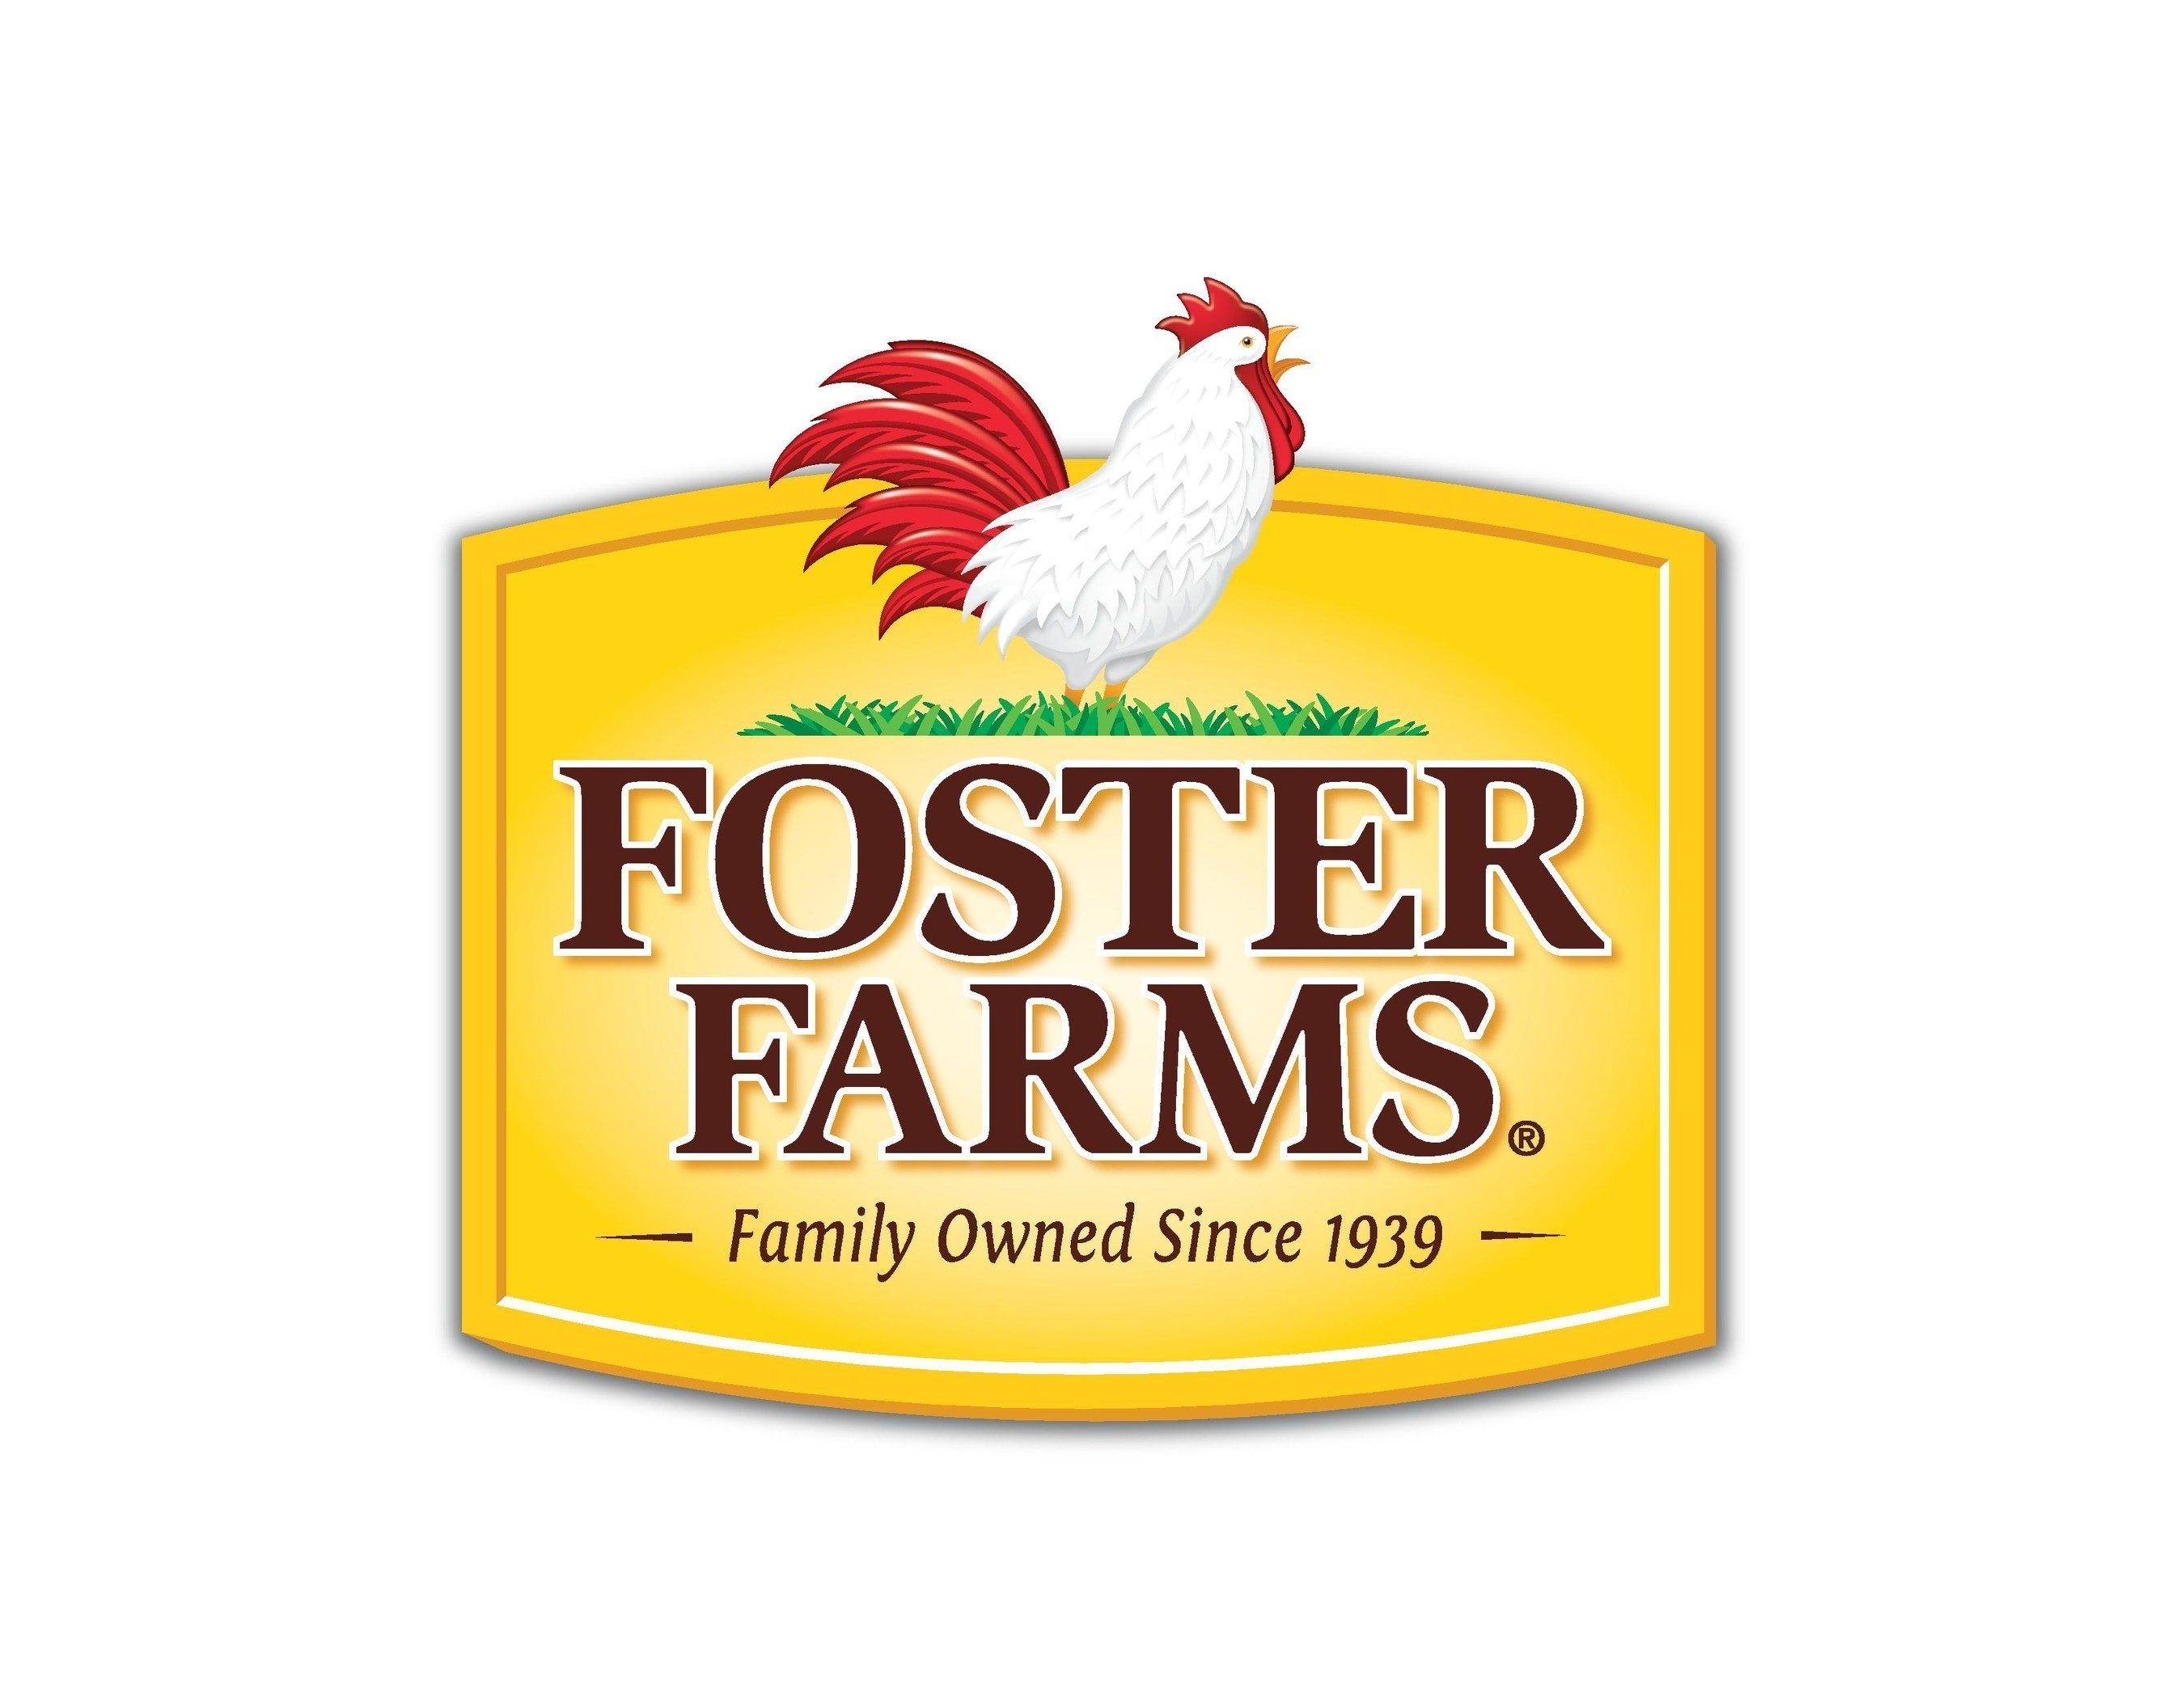 Foster Farms - Family Owned Since 1939 (PRNewsFoto/Foster Farms)